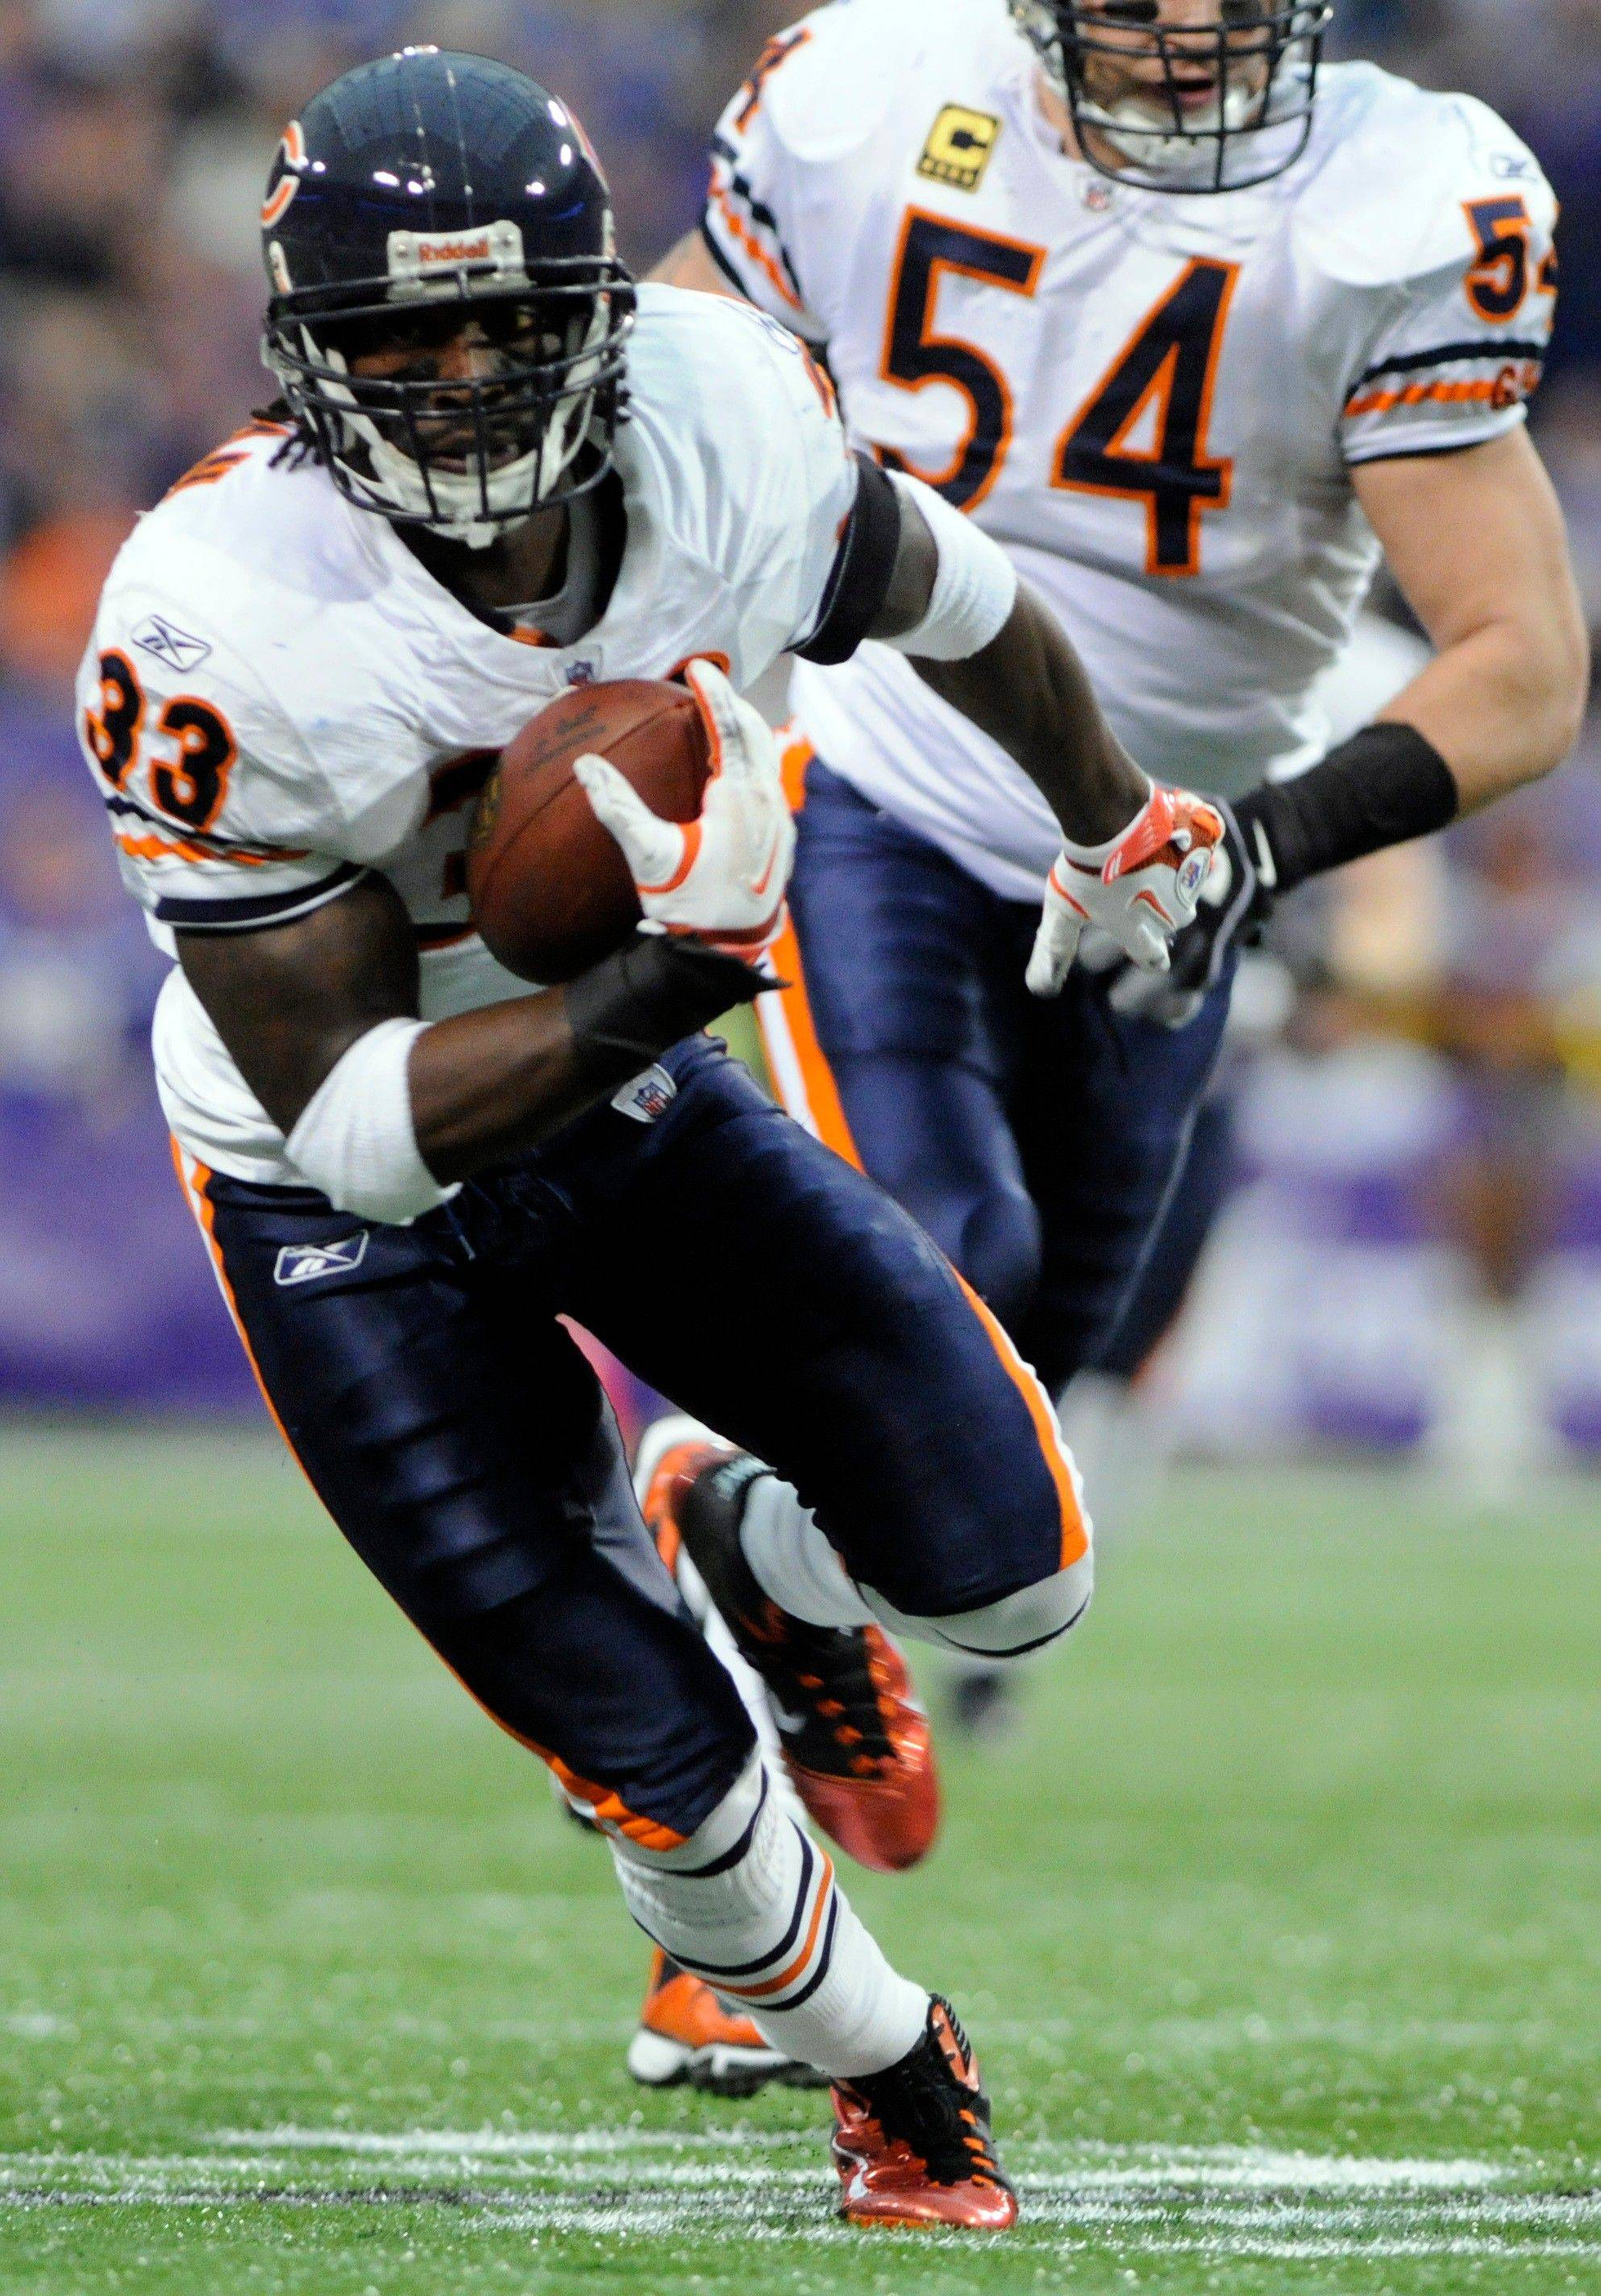 Chicago Bears cornerback Charles Tillman makes a 22-yard interception return in the first half.